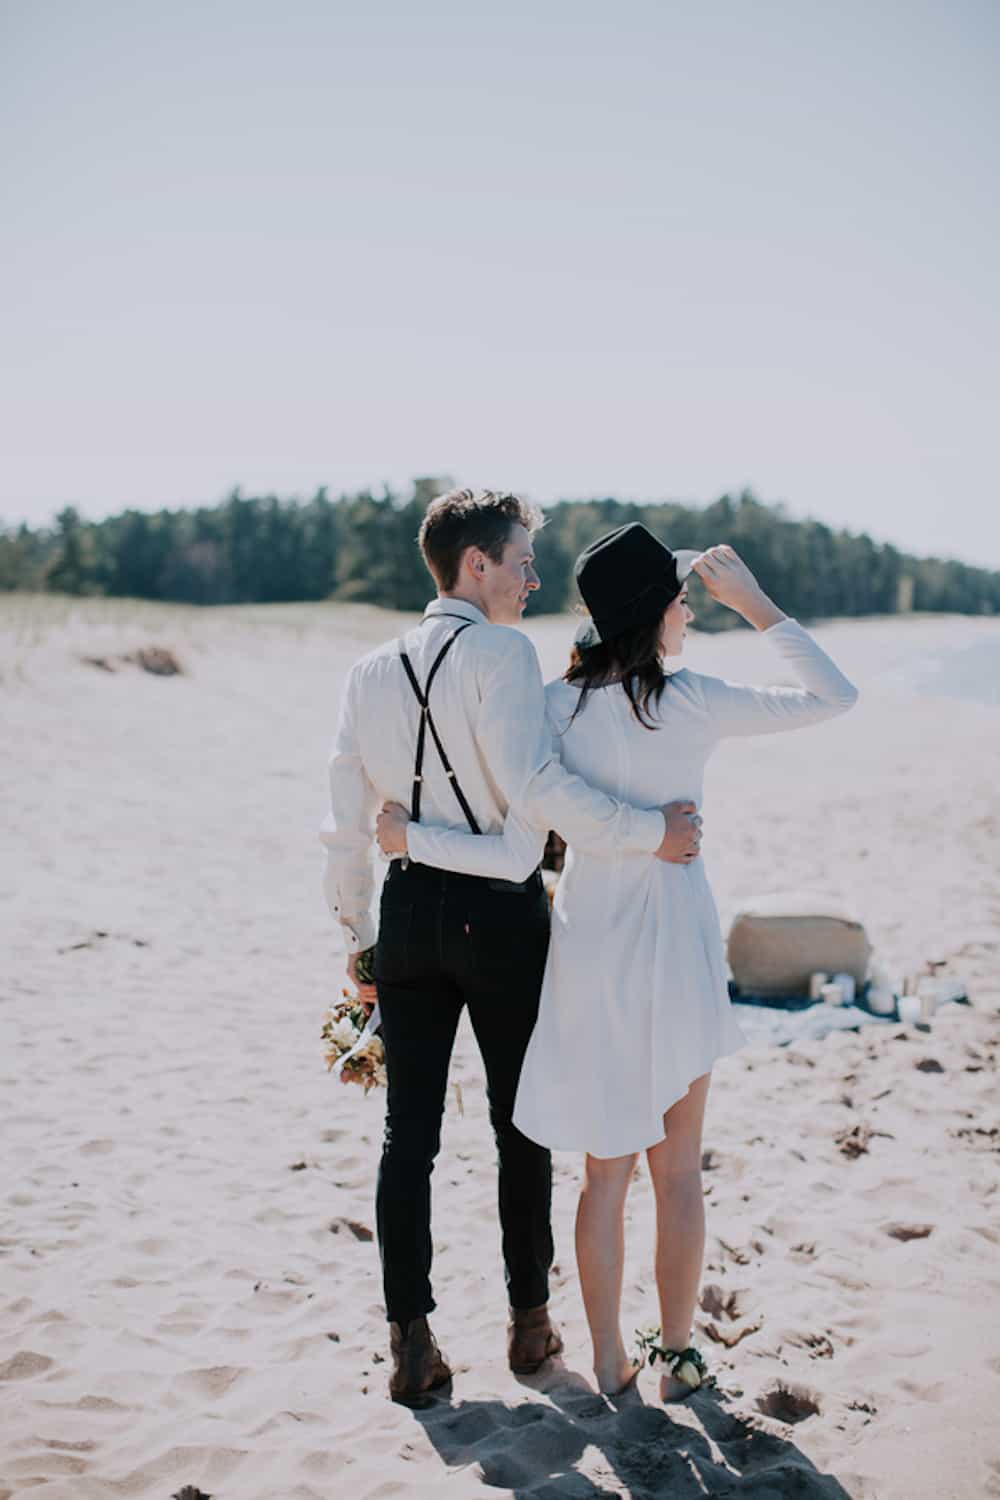 8 VafaPhotography_NorthernMichiganBohemianWeddingInspirationVafaPhoto175_low